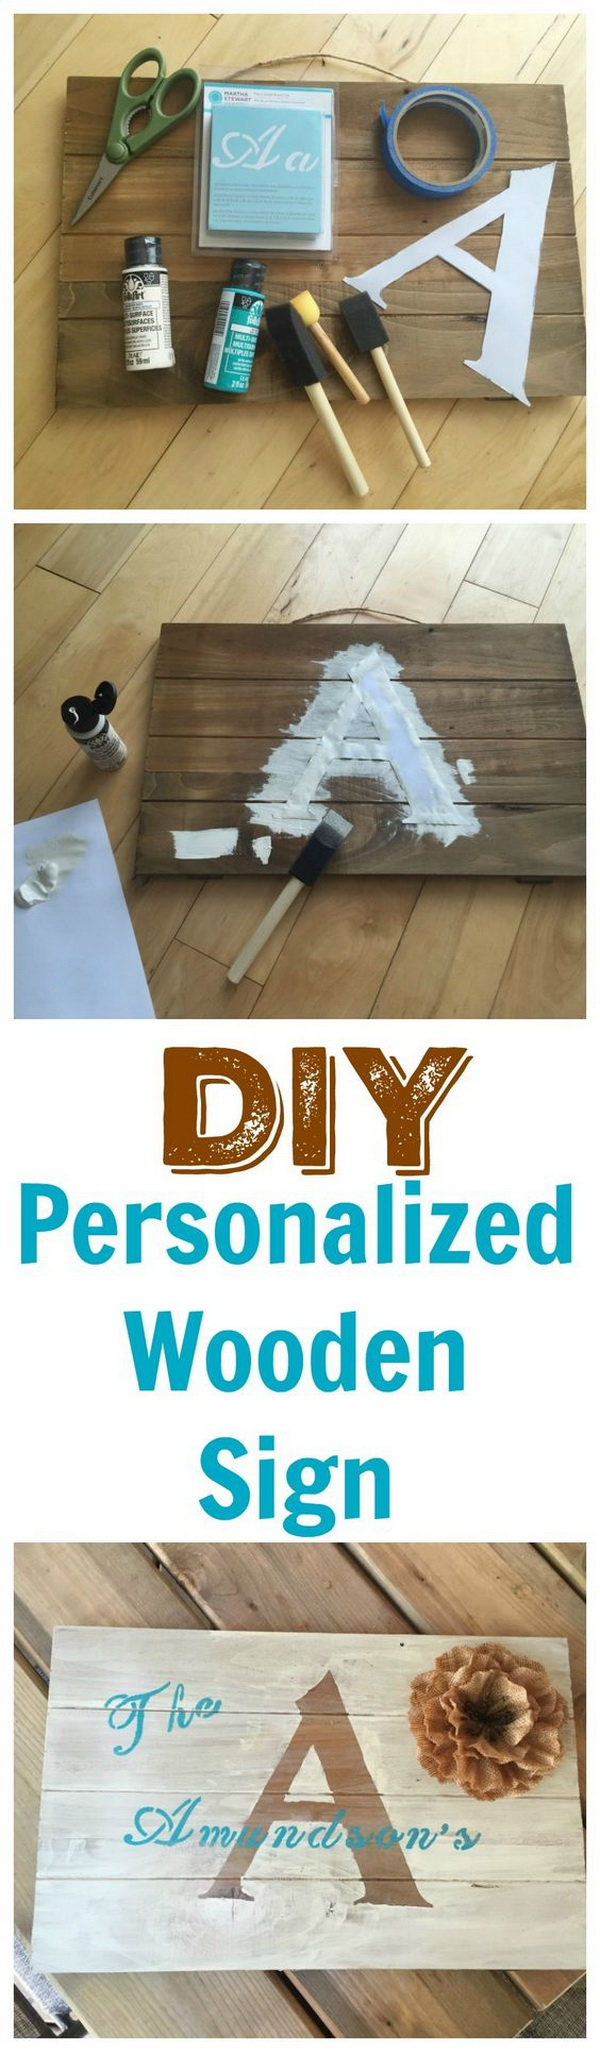 DIY Personalized Wooden Sign.